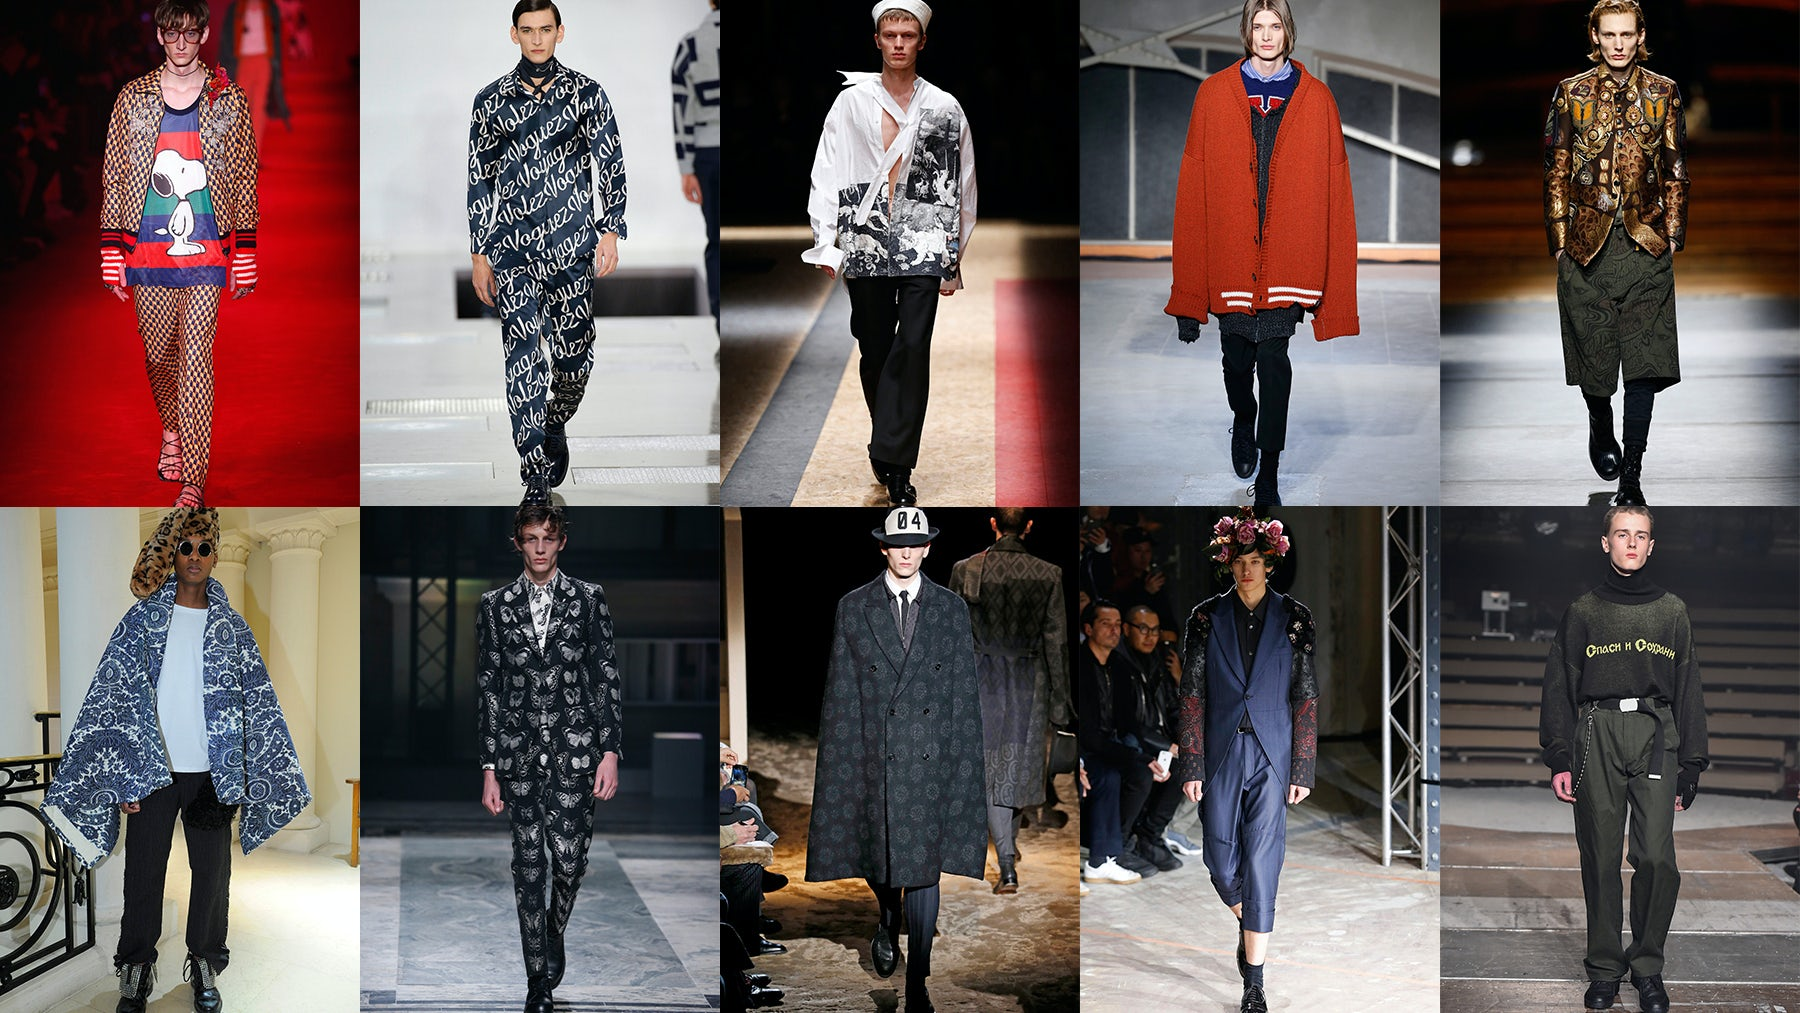 Top 10 Menswear Shows of Autumn/Winter 2016